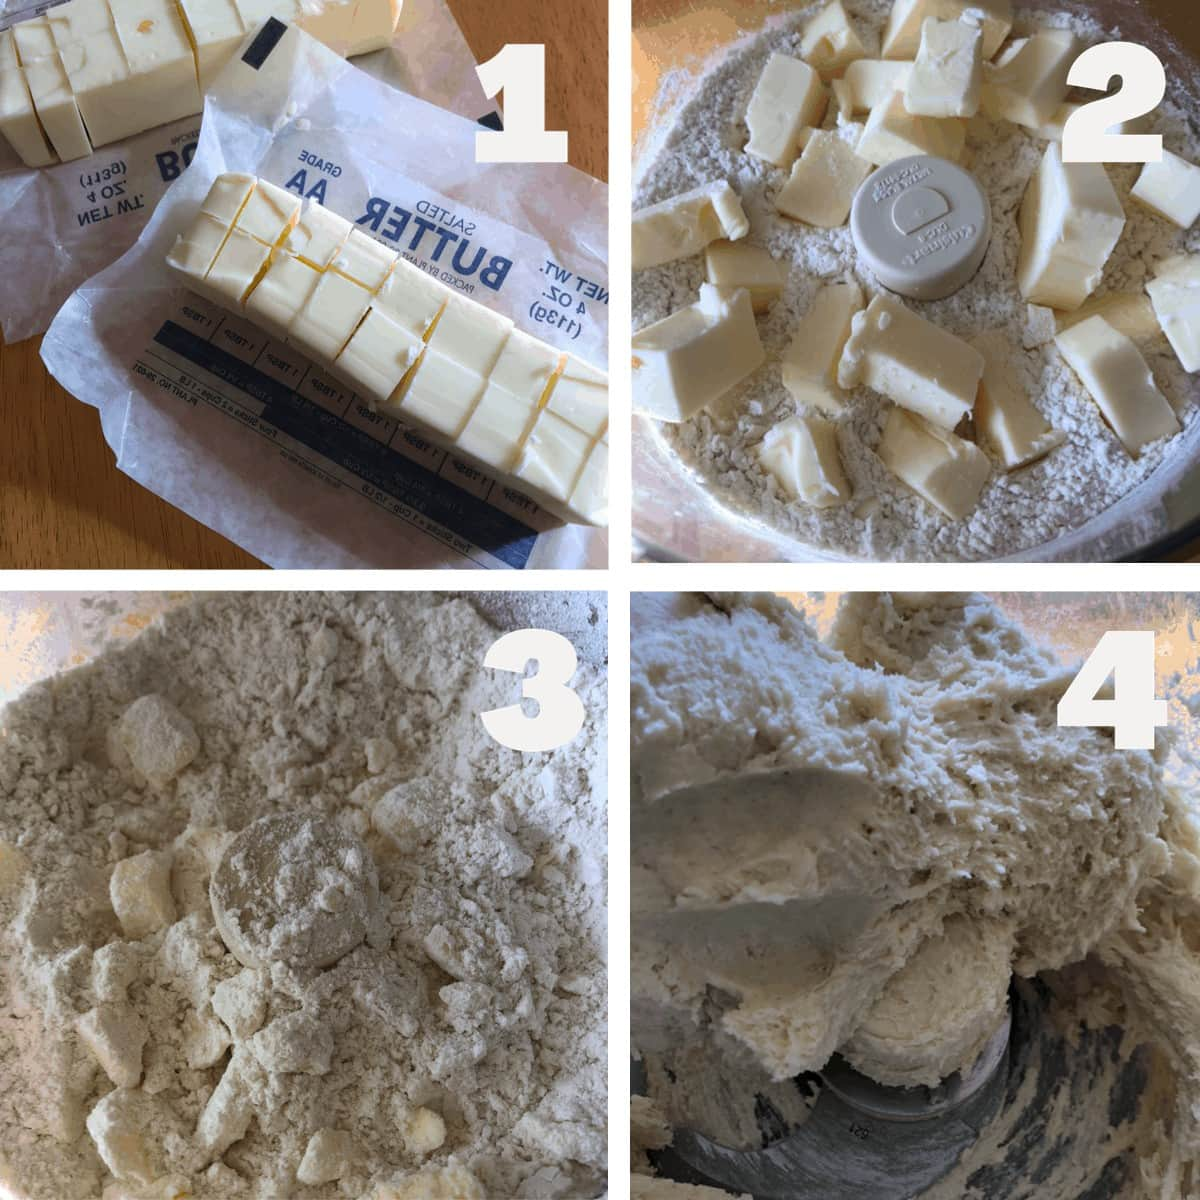 Shows the first 4 steps to making the Missouri Girl pie crust, cubing the butter, adding butter to flour in a food processor, pulsing to combine, forming dough ball in the food processor.